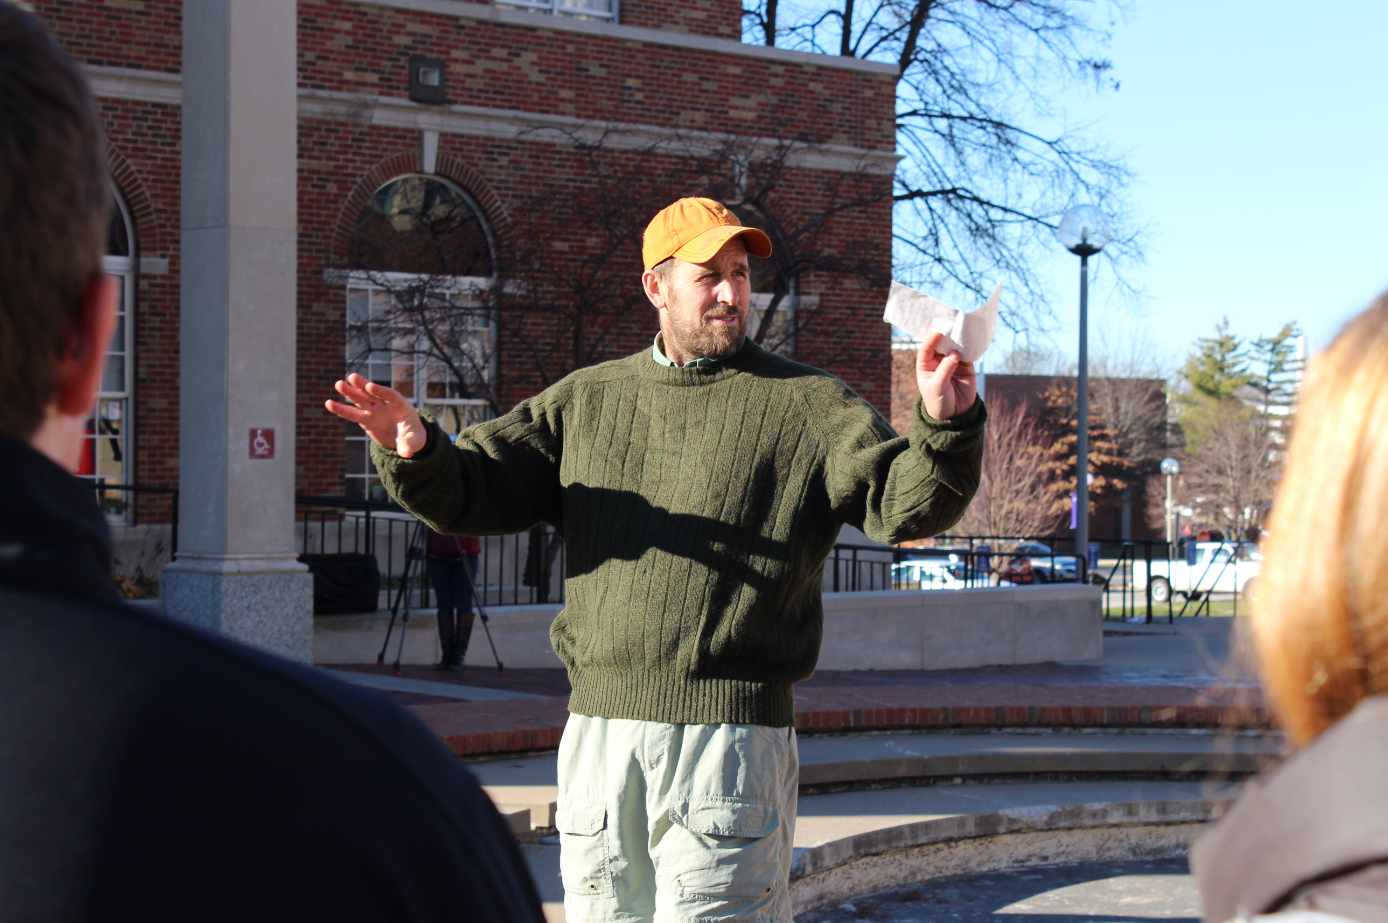 Ethan Hughes speaks prior to the march. Jonah McKeown/TMN Digital